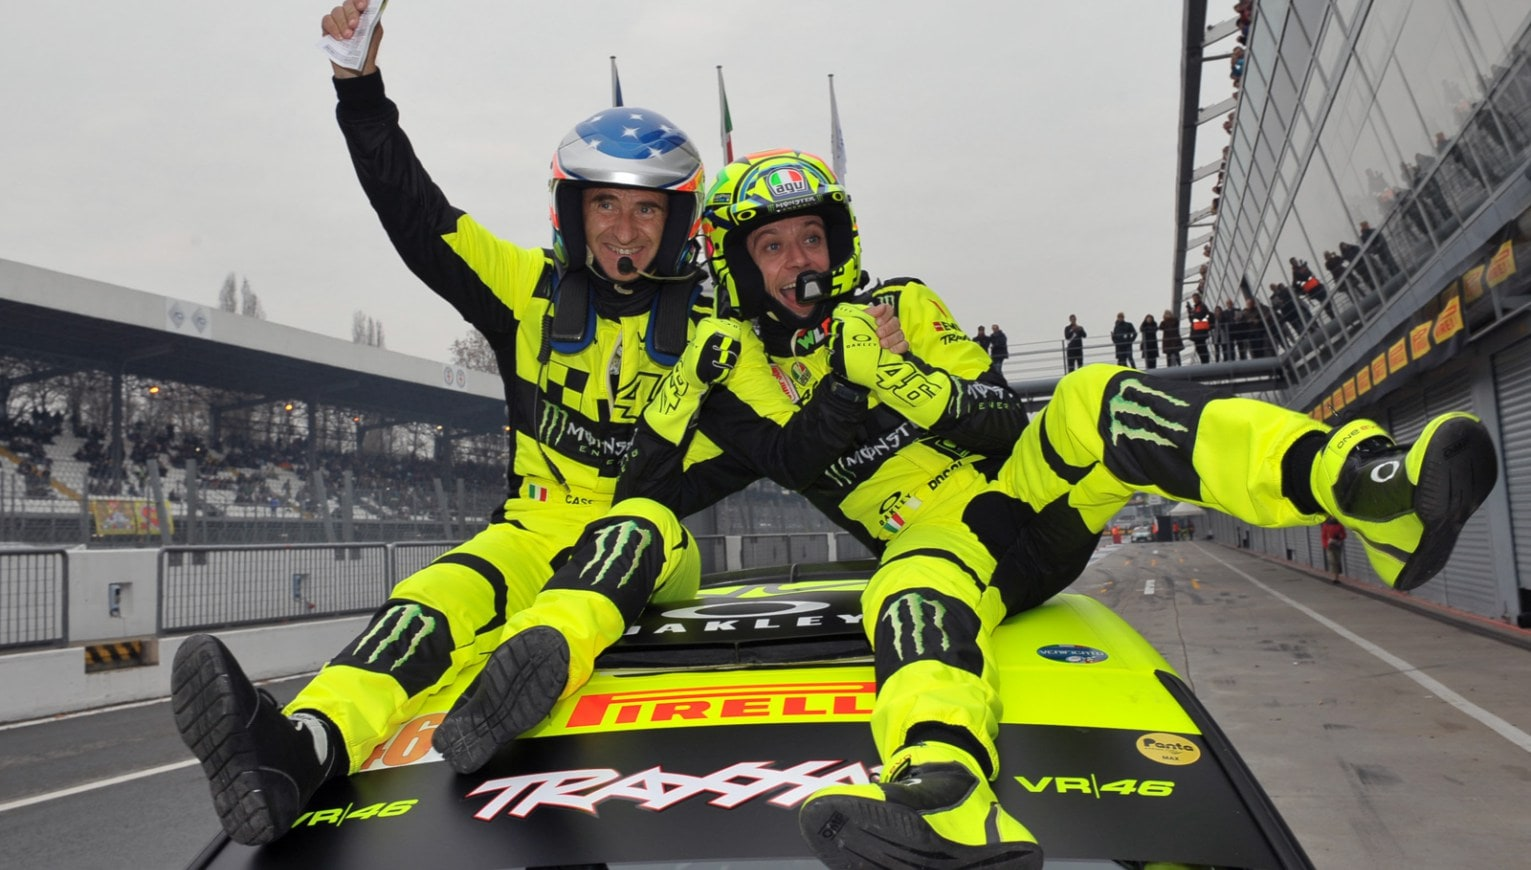 Rally - Rossi trionfa a Monza